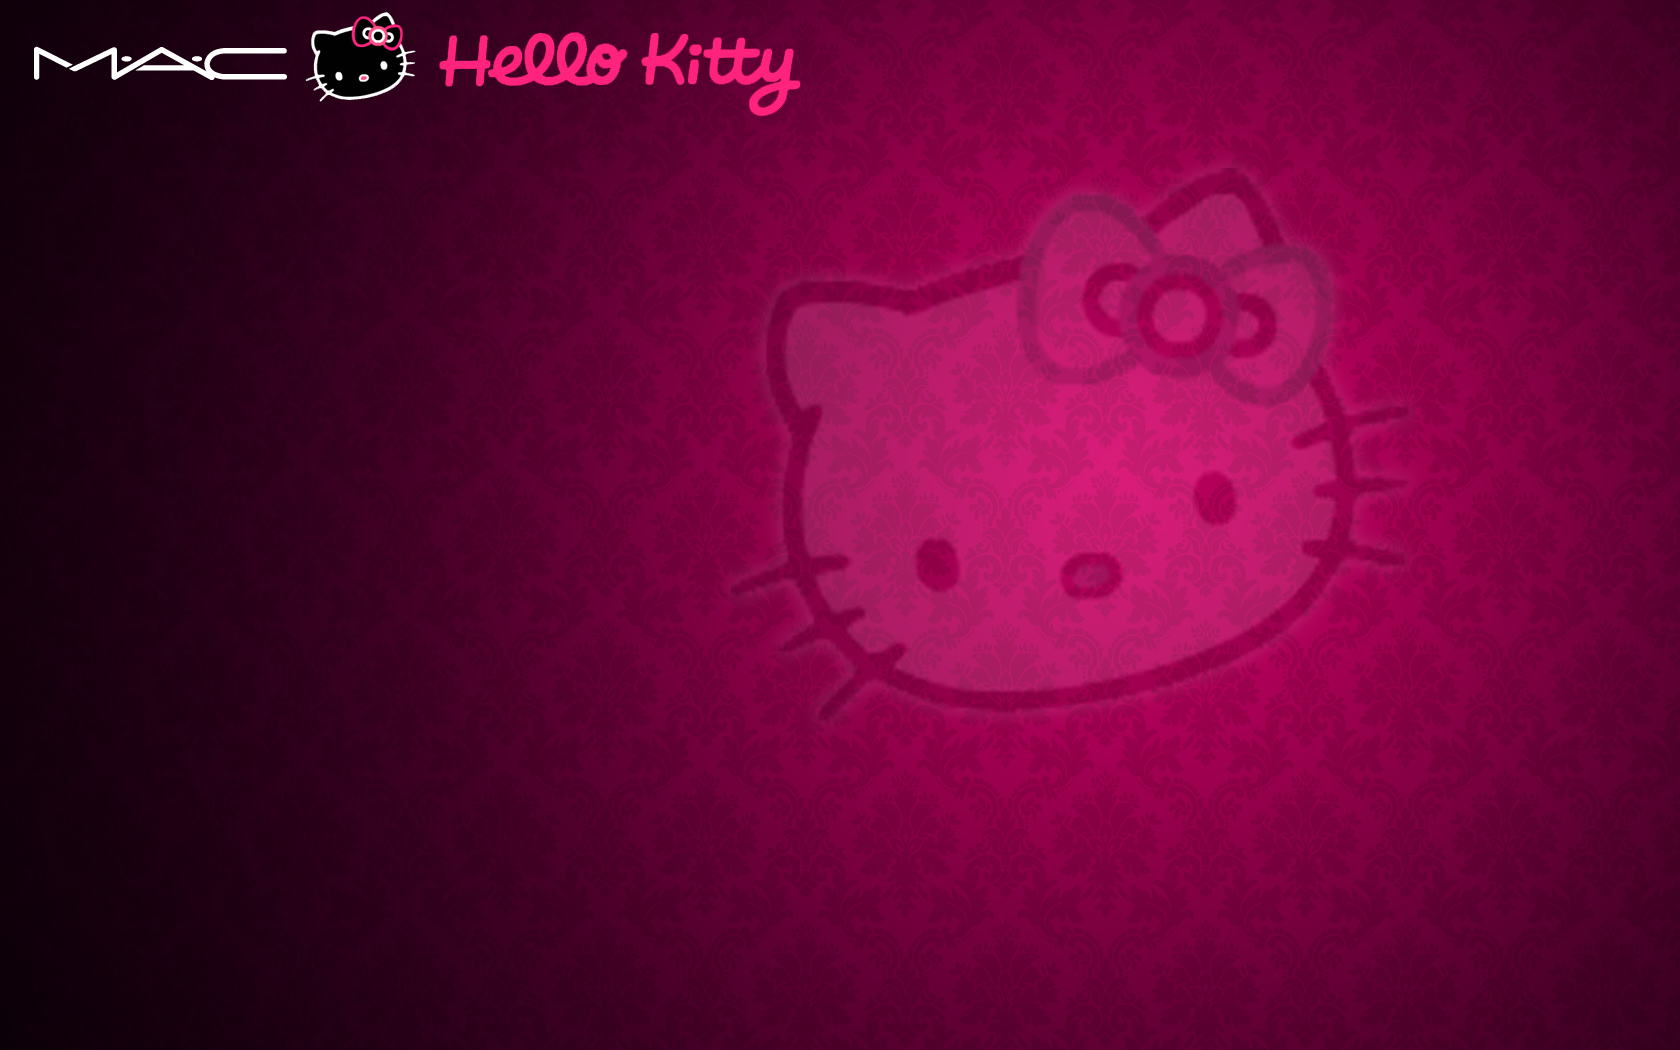 mac-hello-kitty-wallpapers